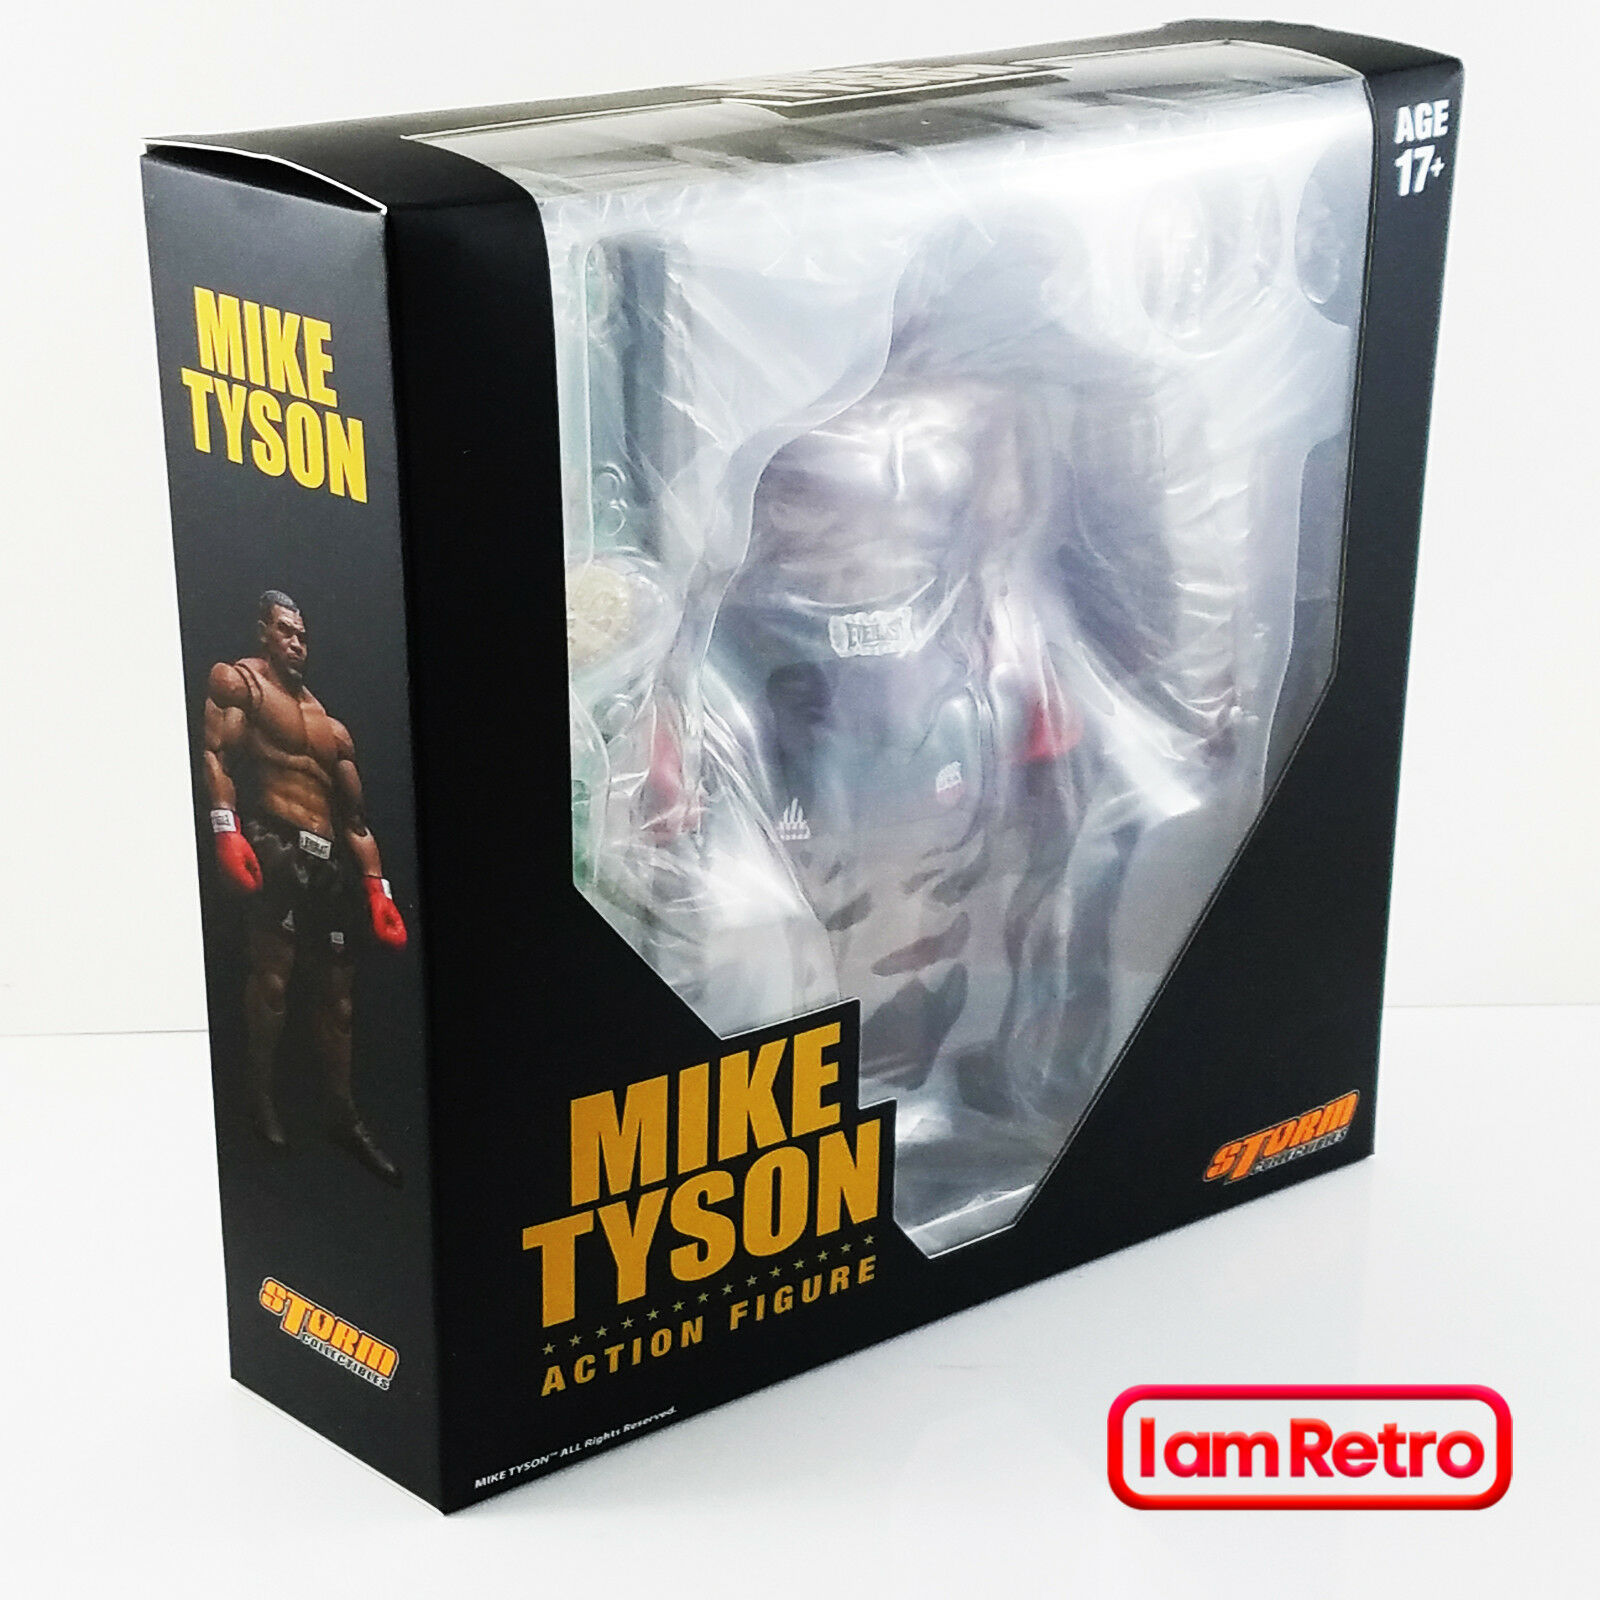 Iron Mike Tyson 1 12 Scale Action Figure by Storm Collectibles